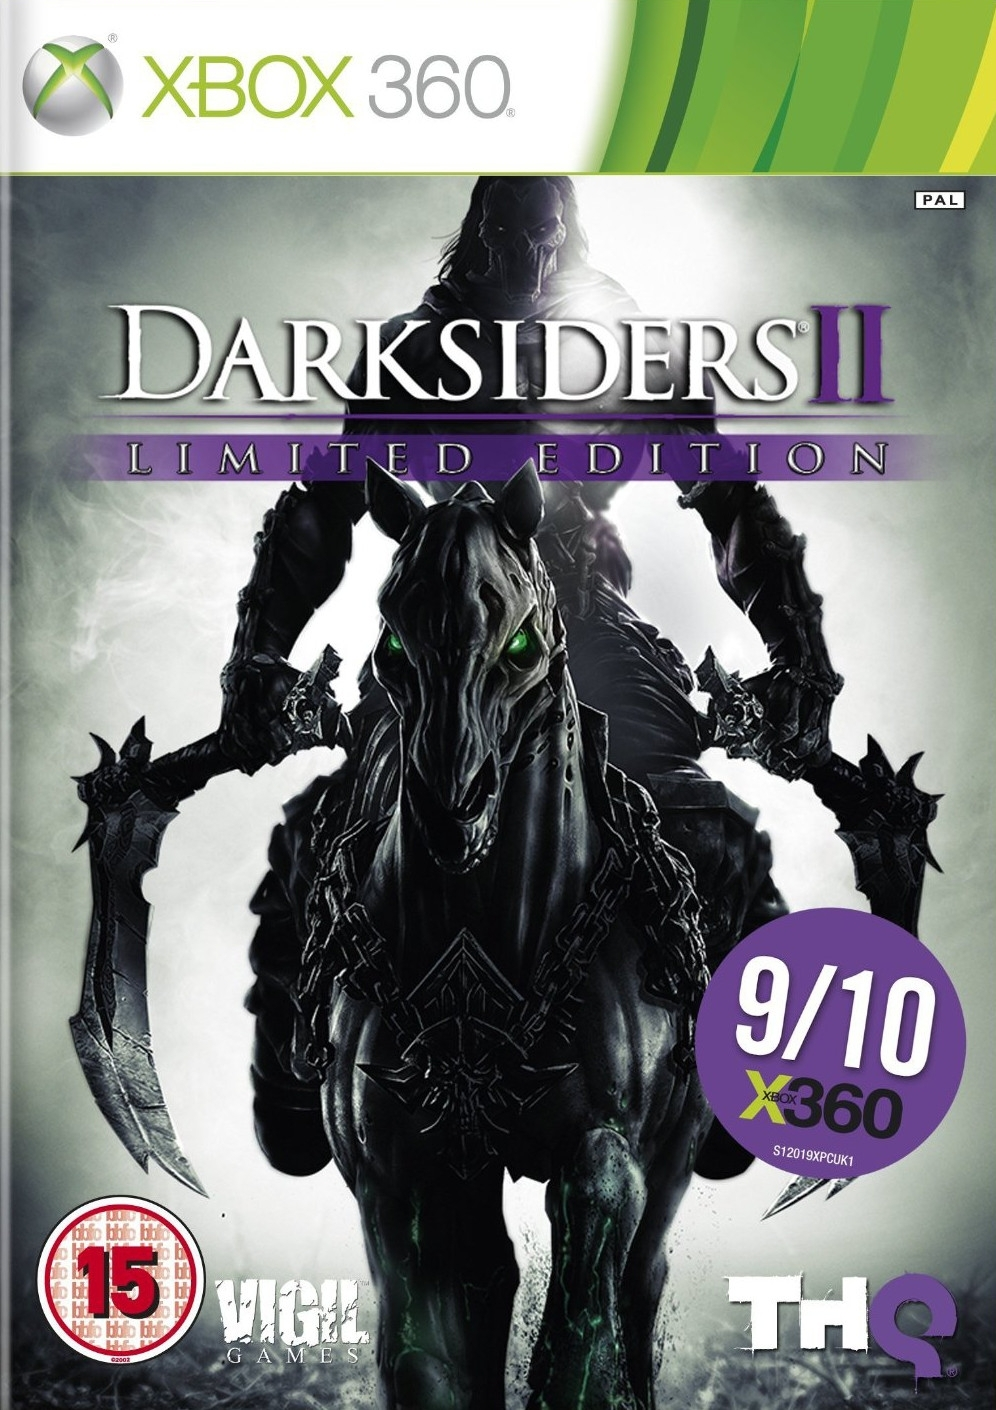 Darksiders II Limited Edition (Xbox 360)